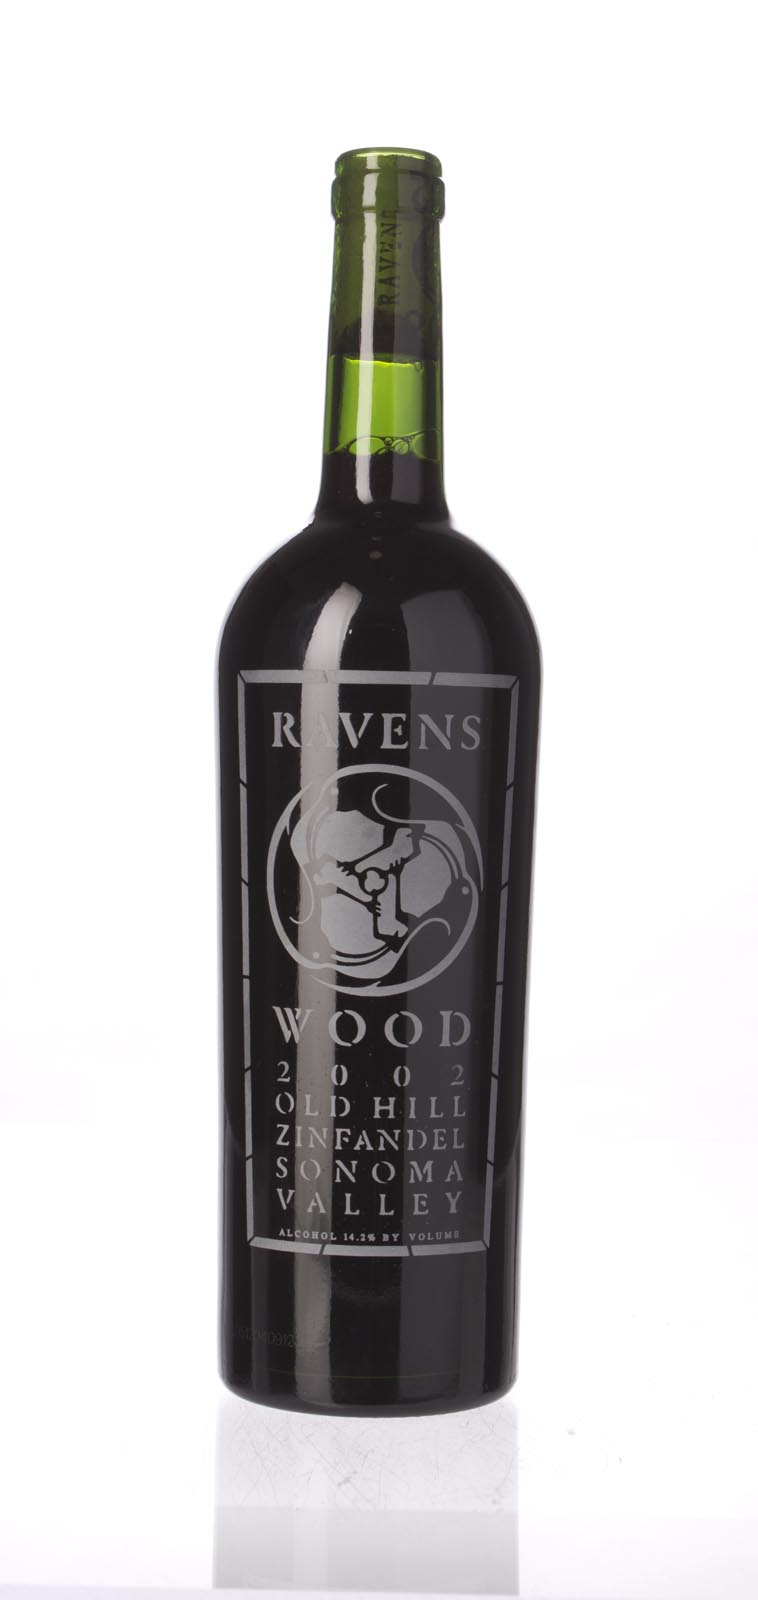 Ravenswood Zinfandel Old Hill Vineyard 2002, 750mL (ST92-94) from The BPW - Merchants of rare and fine wines.